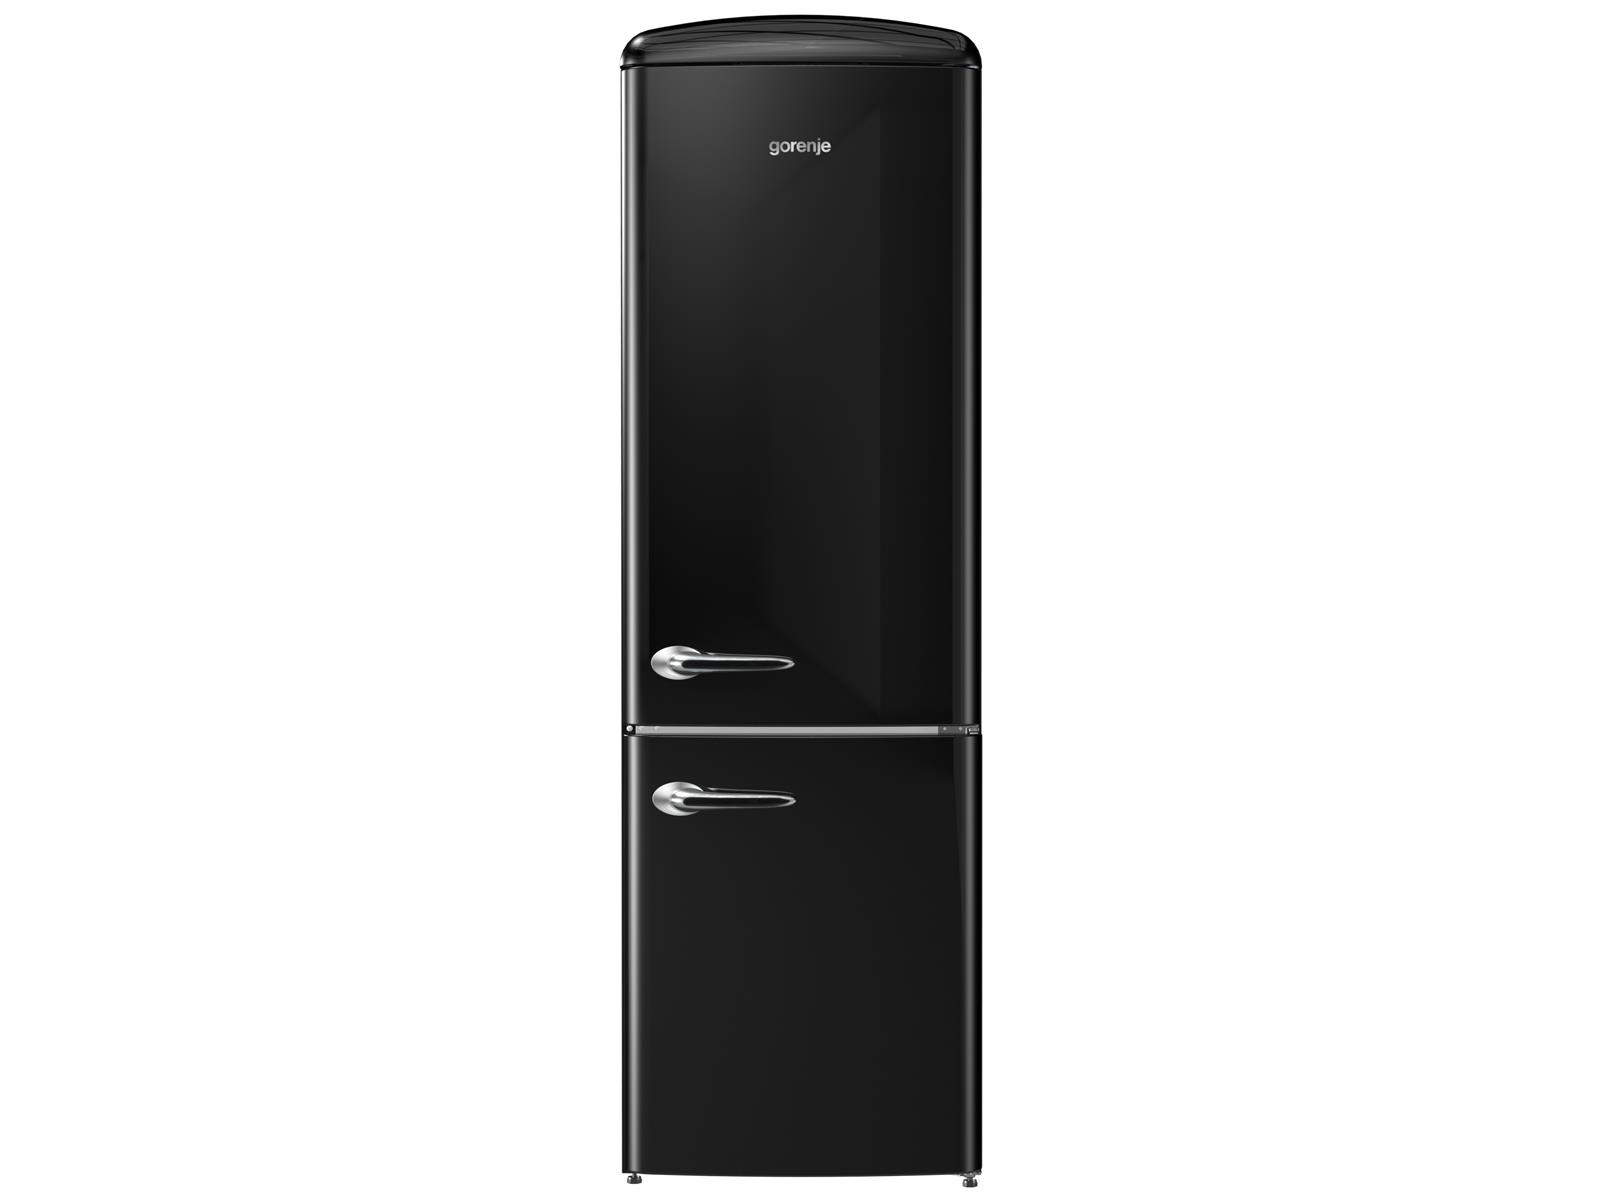 gorenje onrk 193 bk stand k hl gefrier kombination black. Black Bedroom Furniture Sets. Home Design Ideas